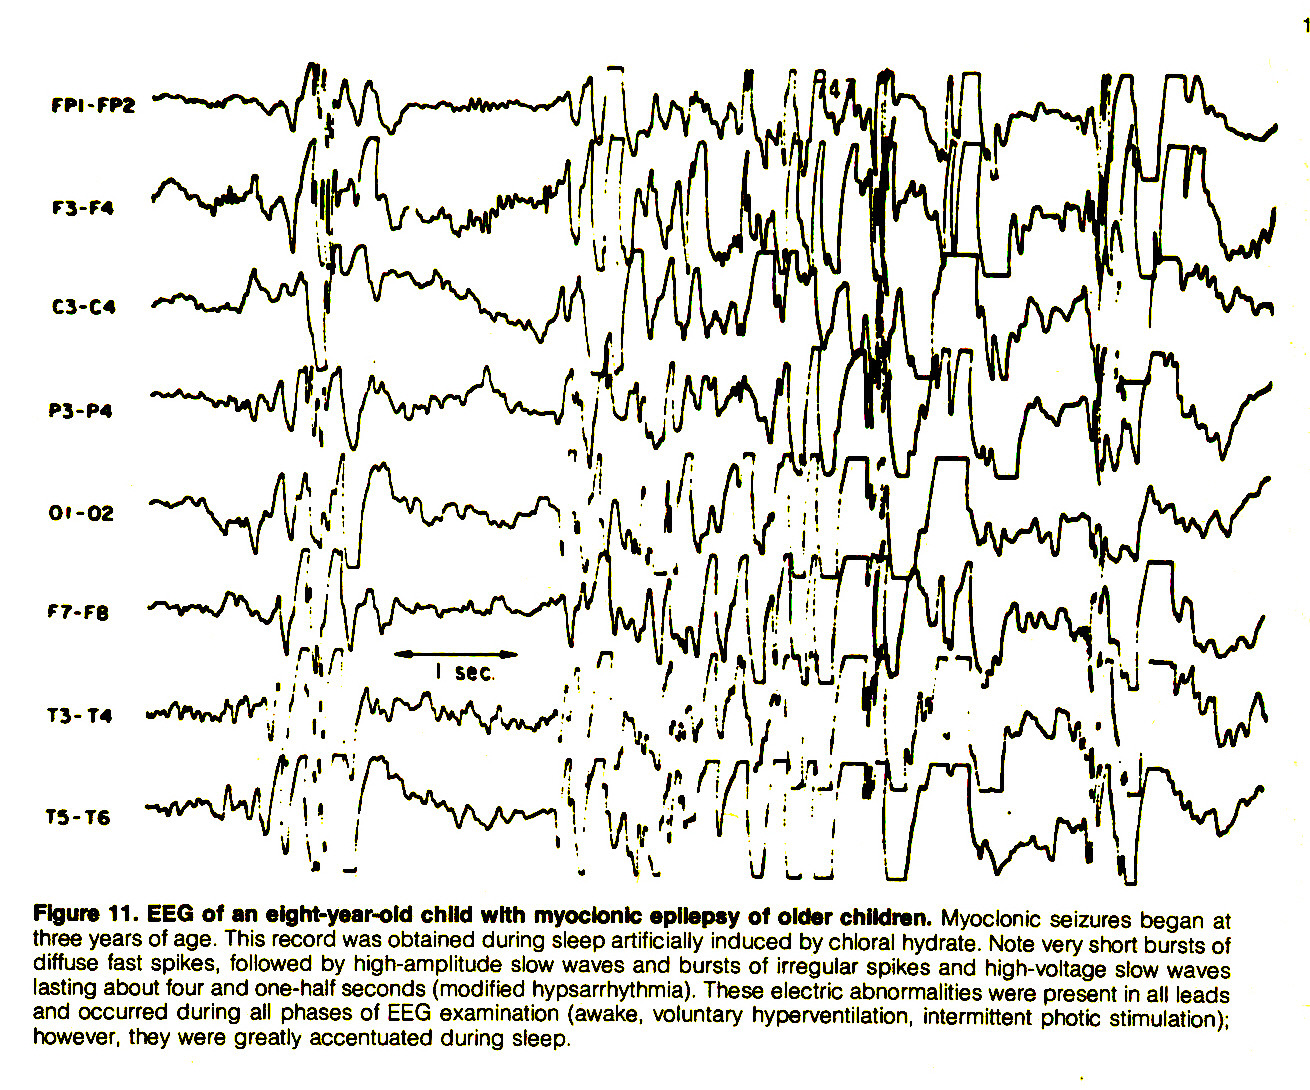 Figure 11. EEQ of an eight-year-old child with myoclonic epilepsy of older children. Myoclonic seizures began at three years of age. This record was obtained during sleep artificially induced by chloral hydrate. Note very short bursts of diffuse fast spikes, followed by high-amplitude slow waves and bursts of irregular spikes and high-voltage slow waves lasting about four and one-half seconds (modified hypsarrhythmia). These electric abnormalities were present in all leads and occurred during all phases of EEG examination (awake, voluntary hyperventilation, intermittent photic stimulation); however, they were greatly accentuated during sleep.